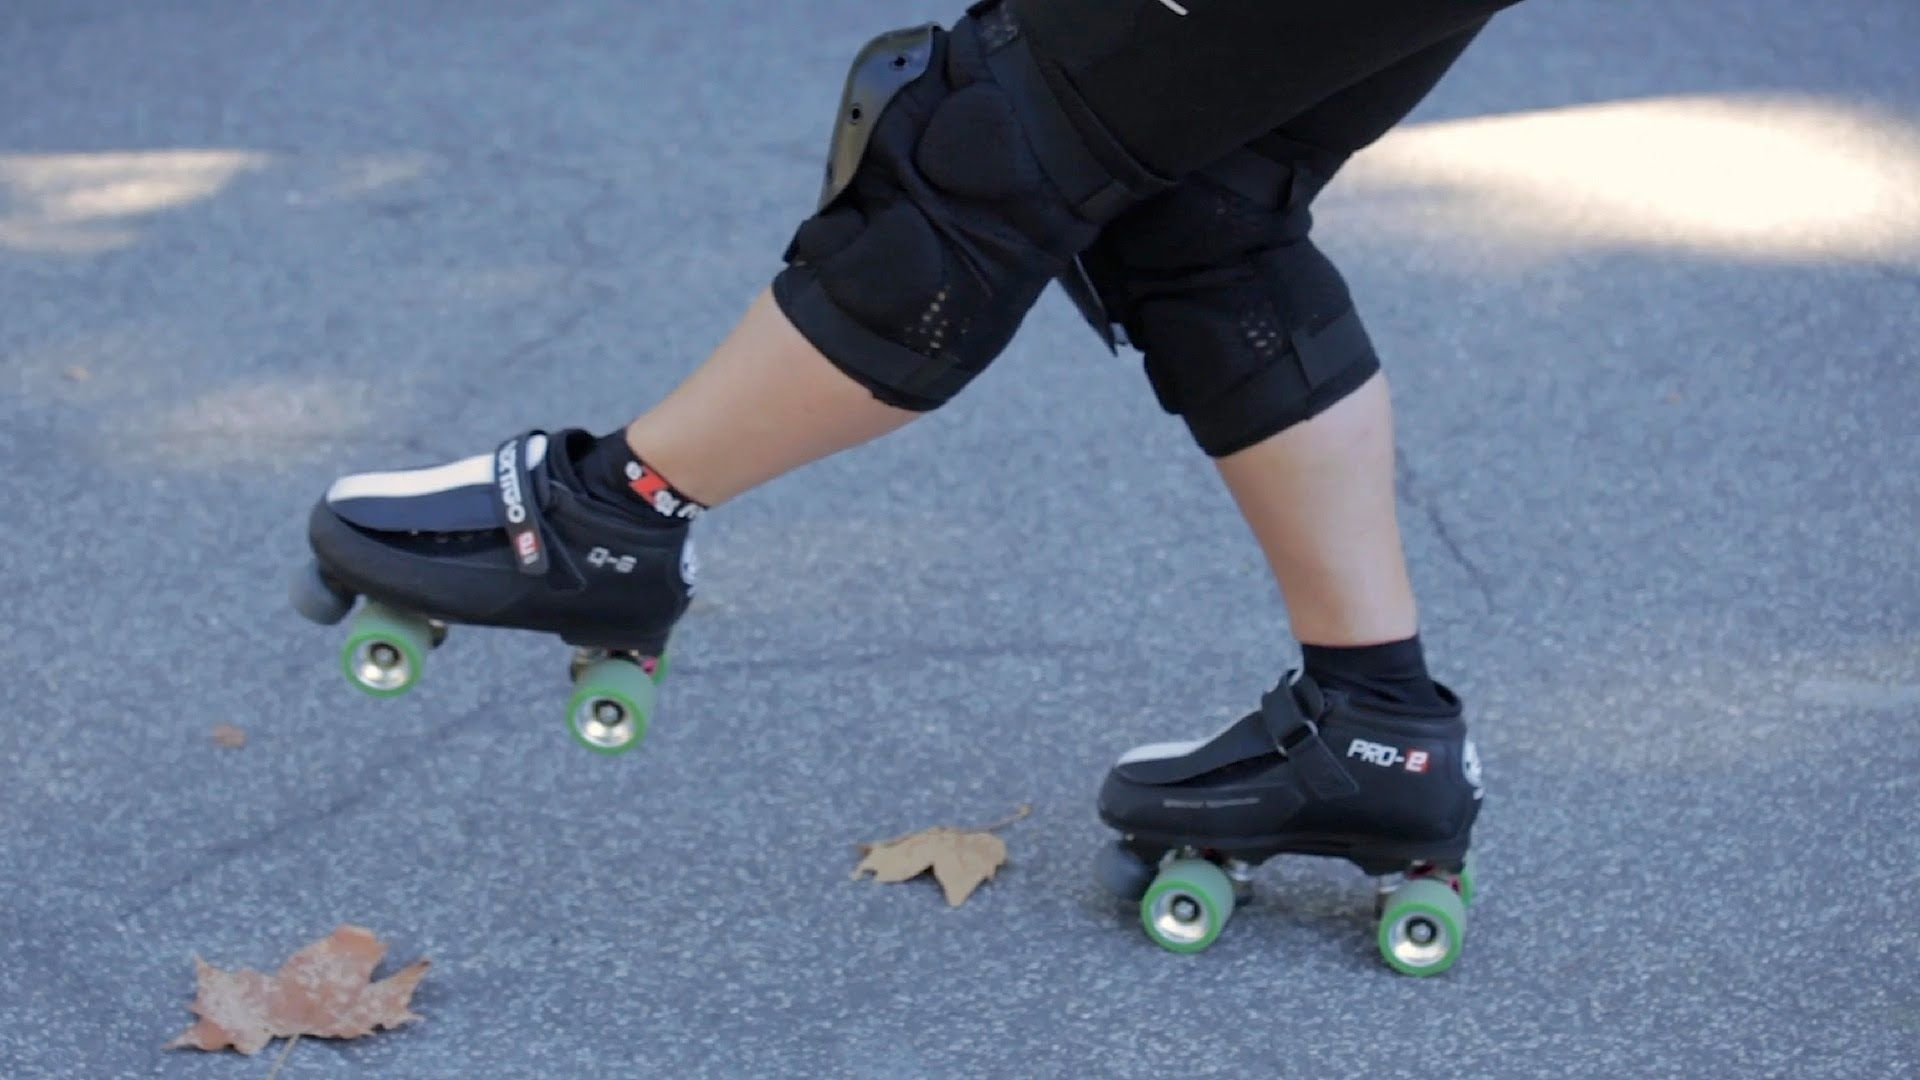 Roller skates videos youtube - Learn How To Roller Skate And Rollerblade From Former World Champion Speed Skater And Usa Roller Sports Hall Of Famer Gypsy Lucas In These Howcast Videos